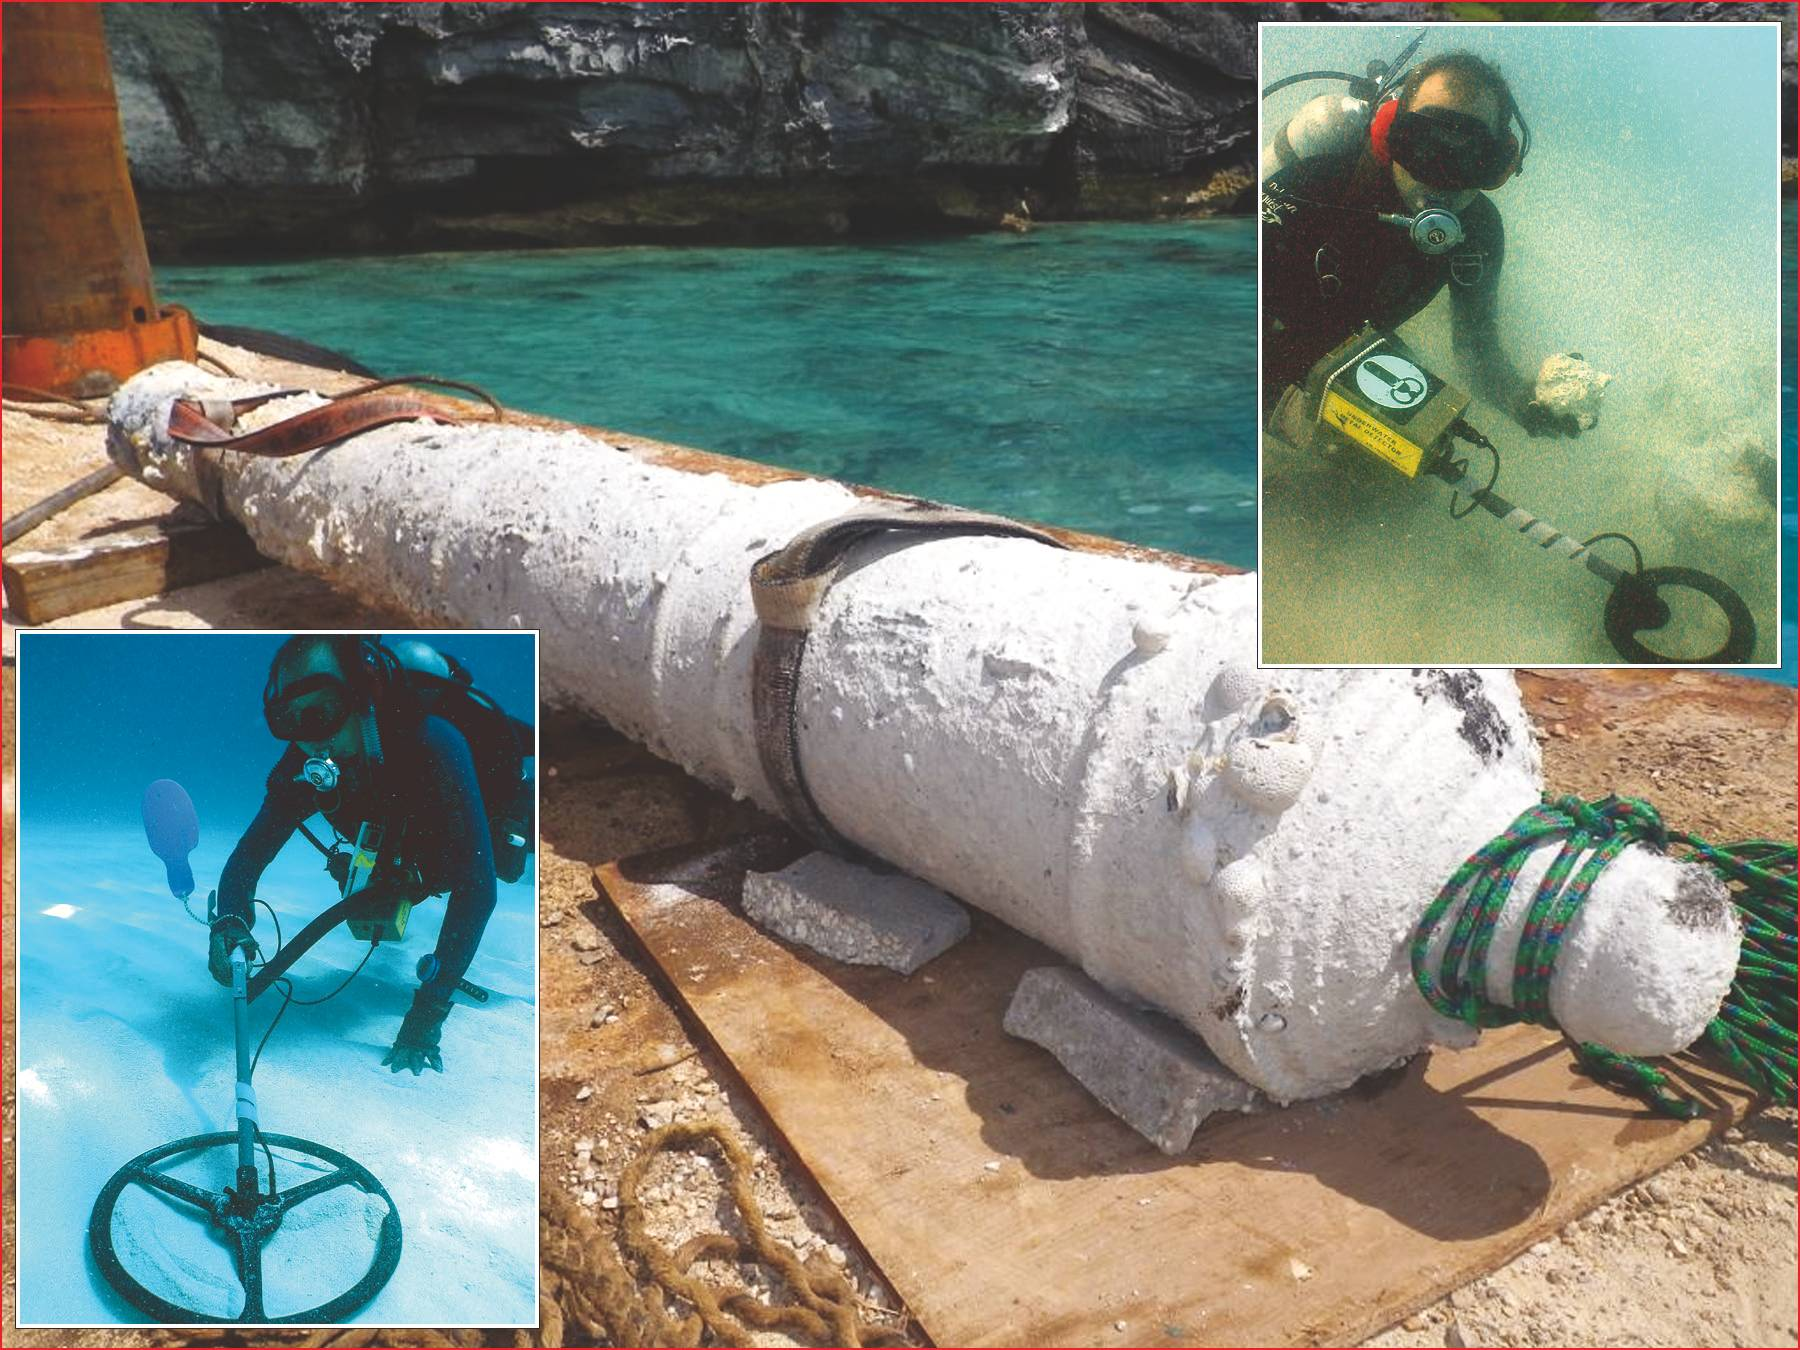 File Cannon recovered from the Warwick, Bottom inset – diver searches wreck site with the Pulse 8X's deep seeking 16 inch coil, Top inset – James Davidson with Pulse 8X and recovered cannon ball.